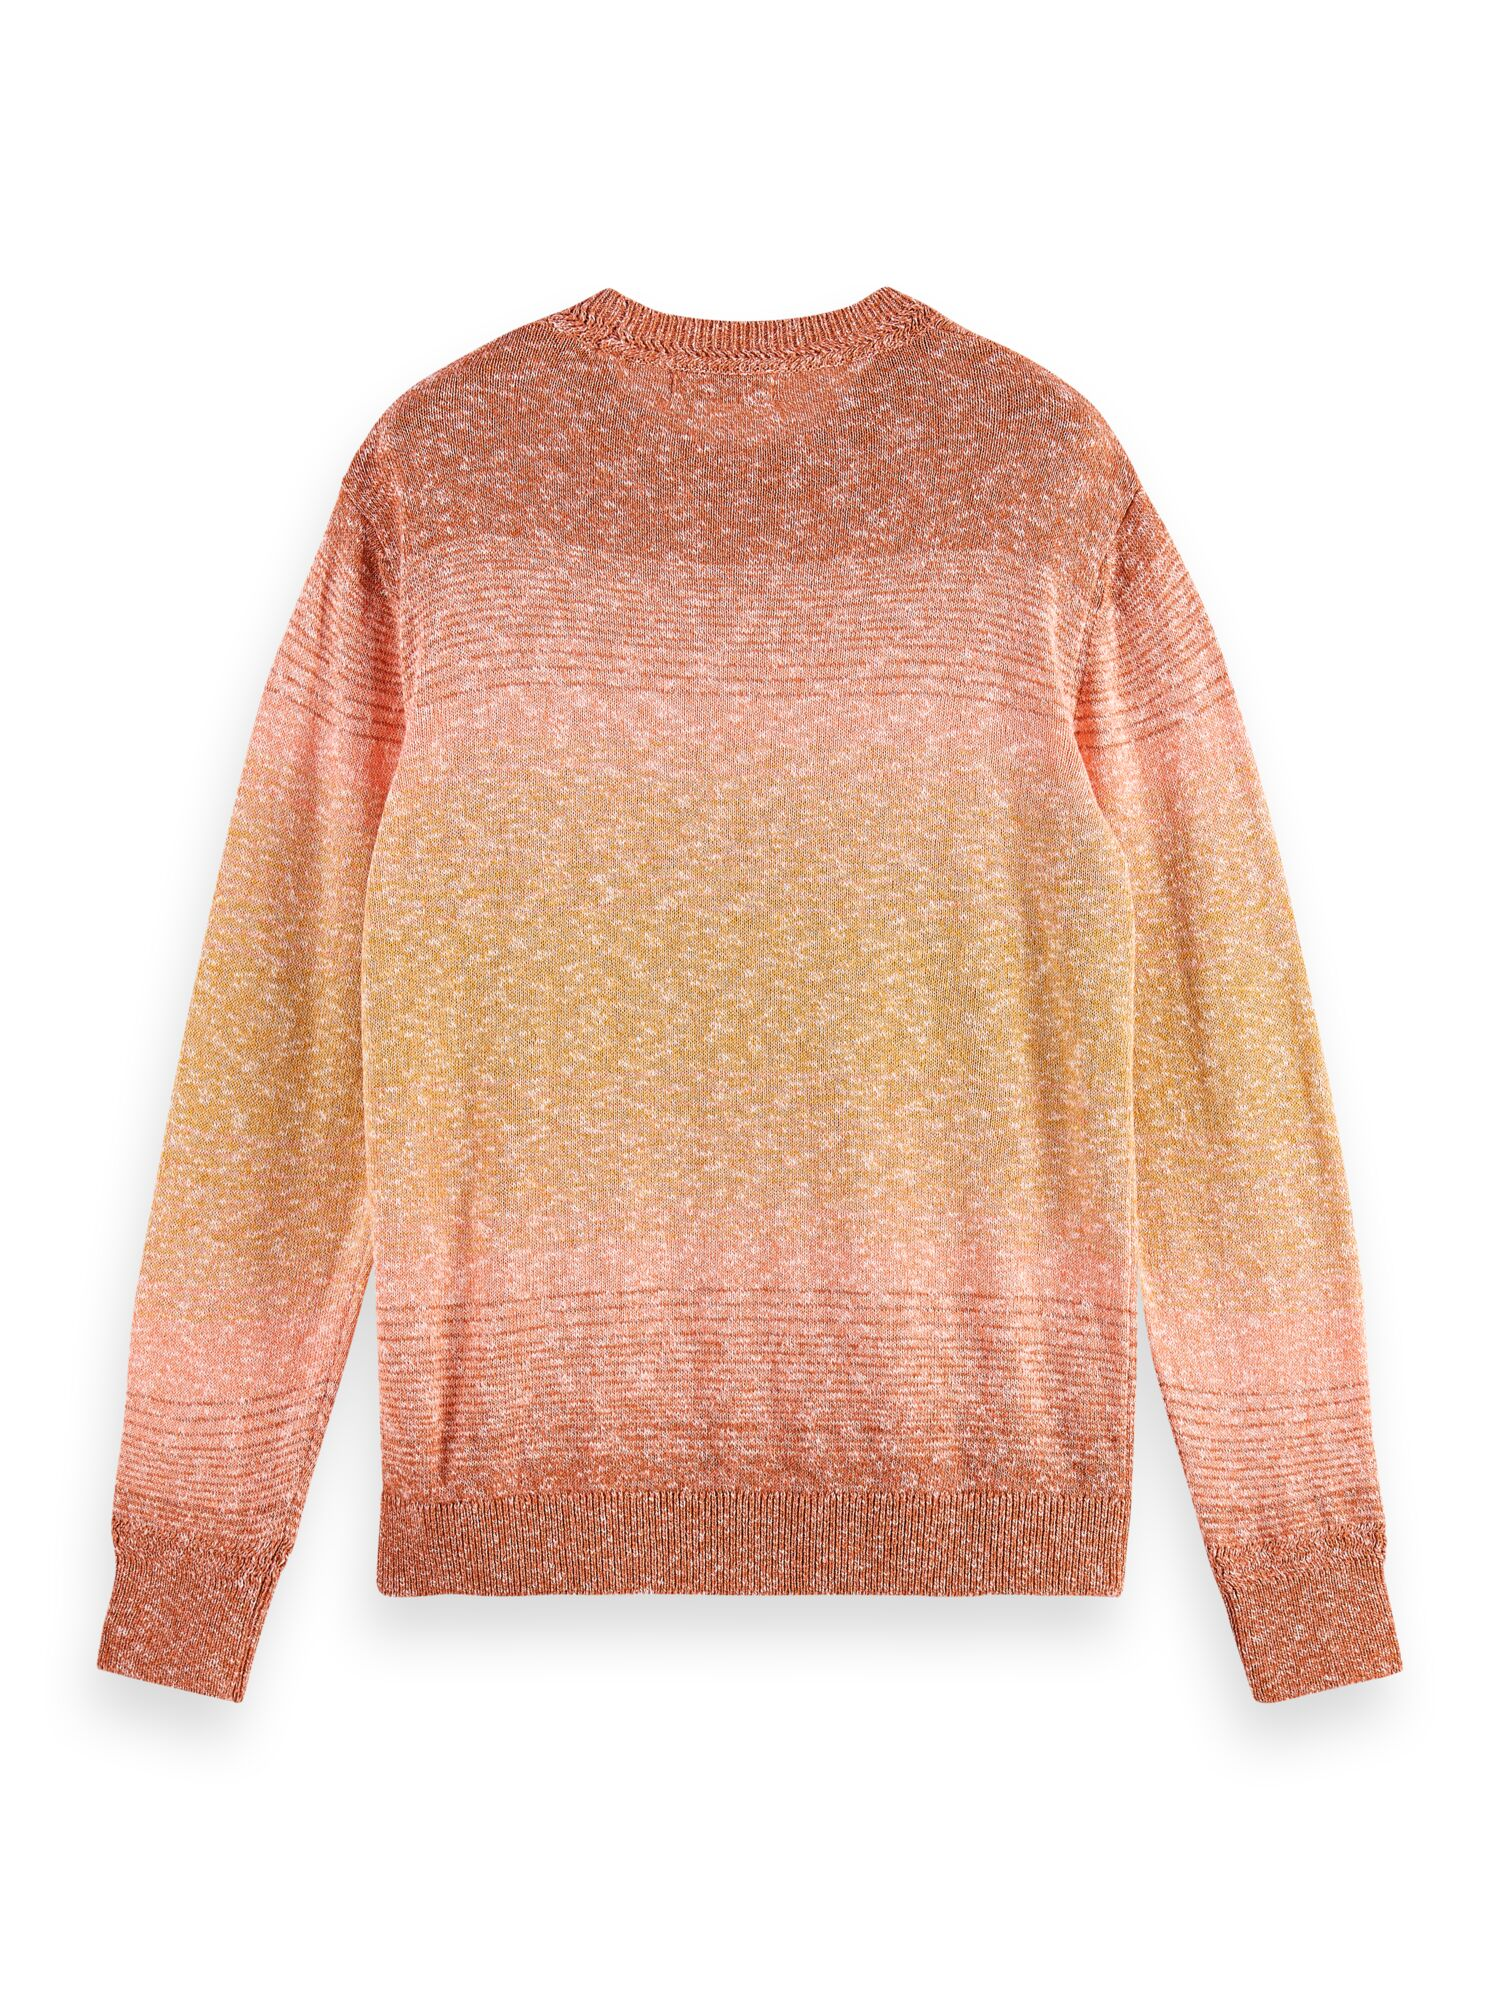 Scotch & Soda | Recycled cotton blend crewneck pull in melange knit